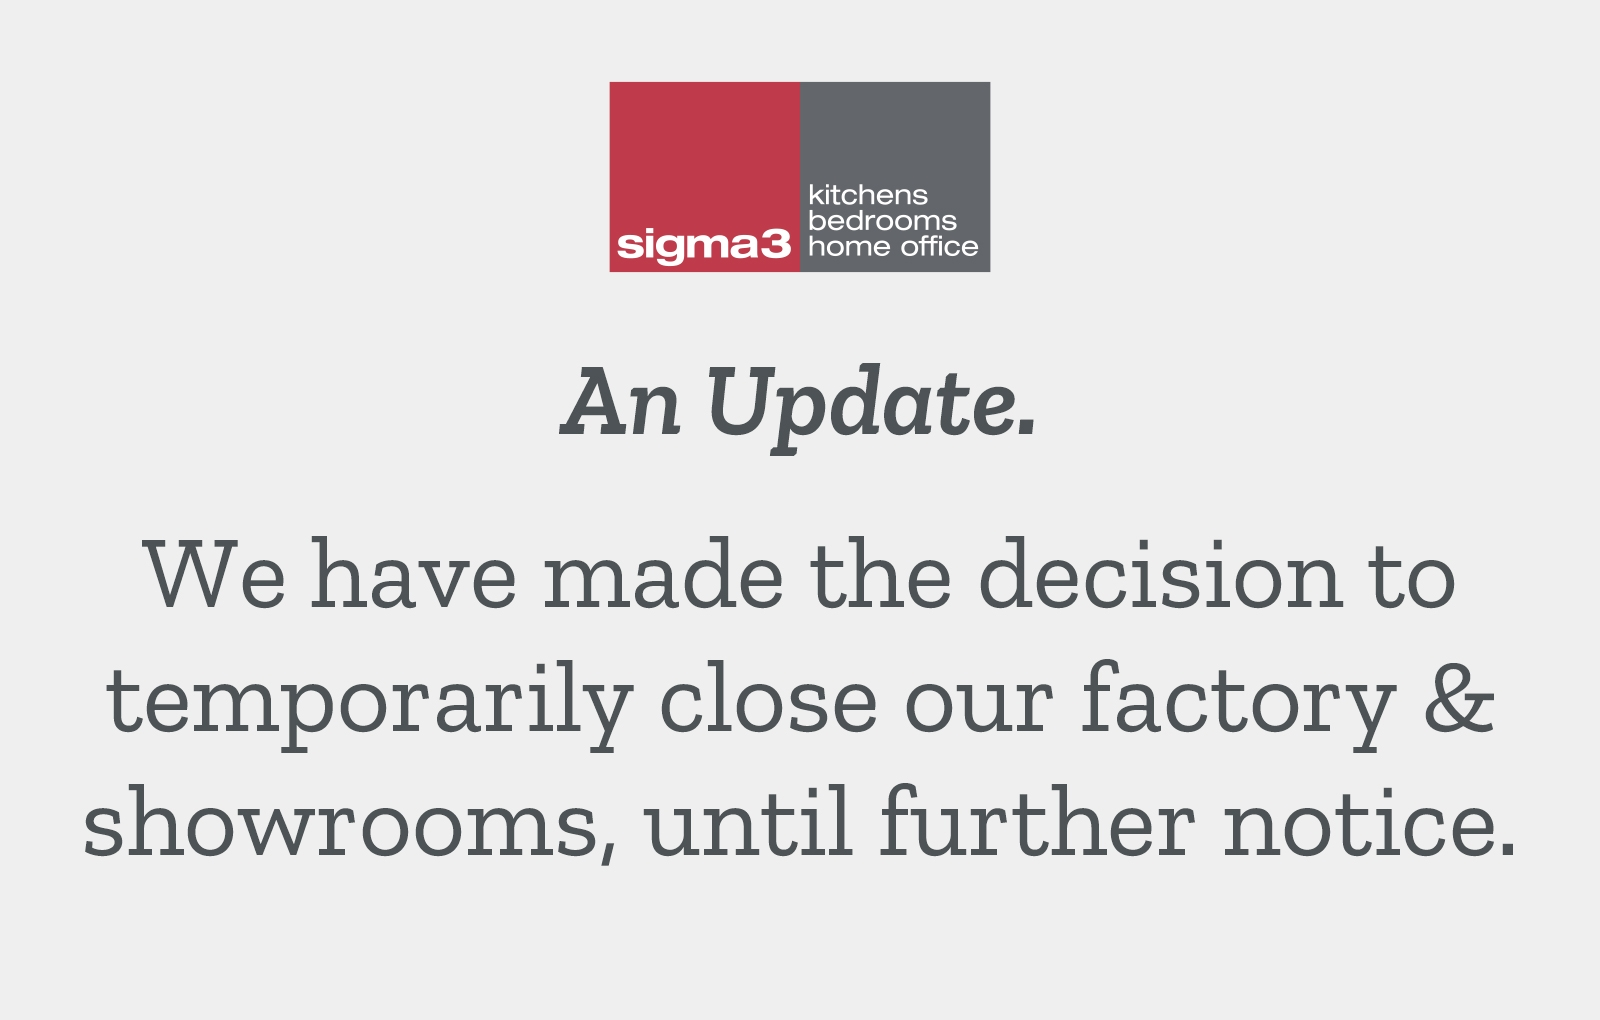 An Update From The Sigma 3 Kitchens Family